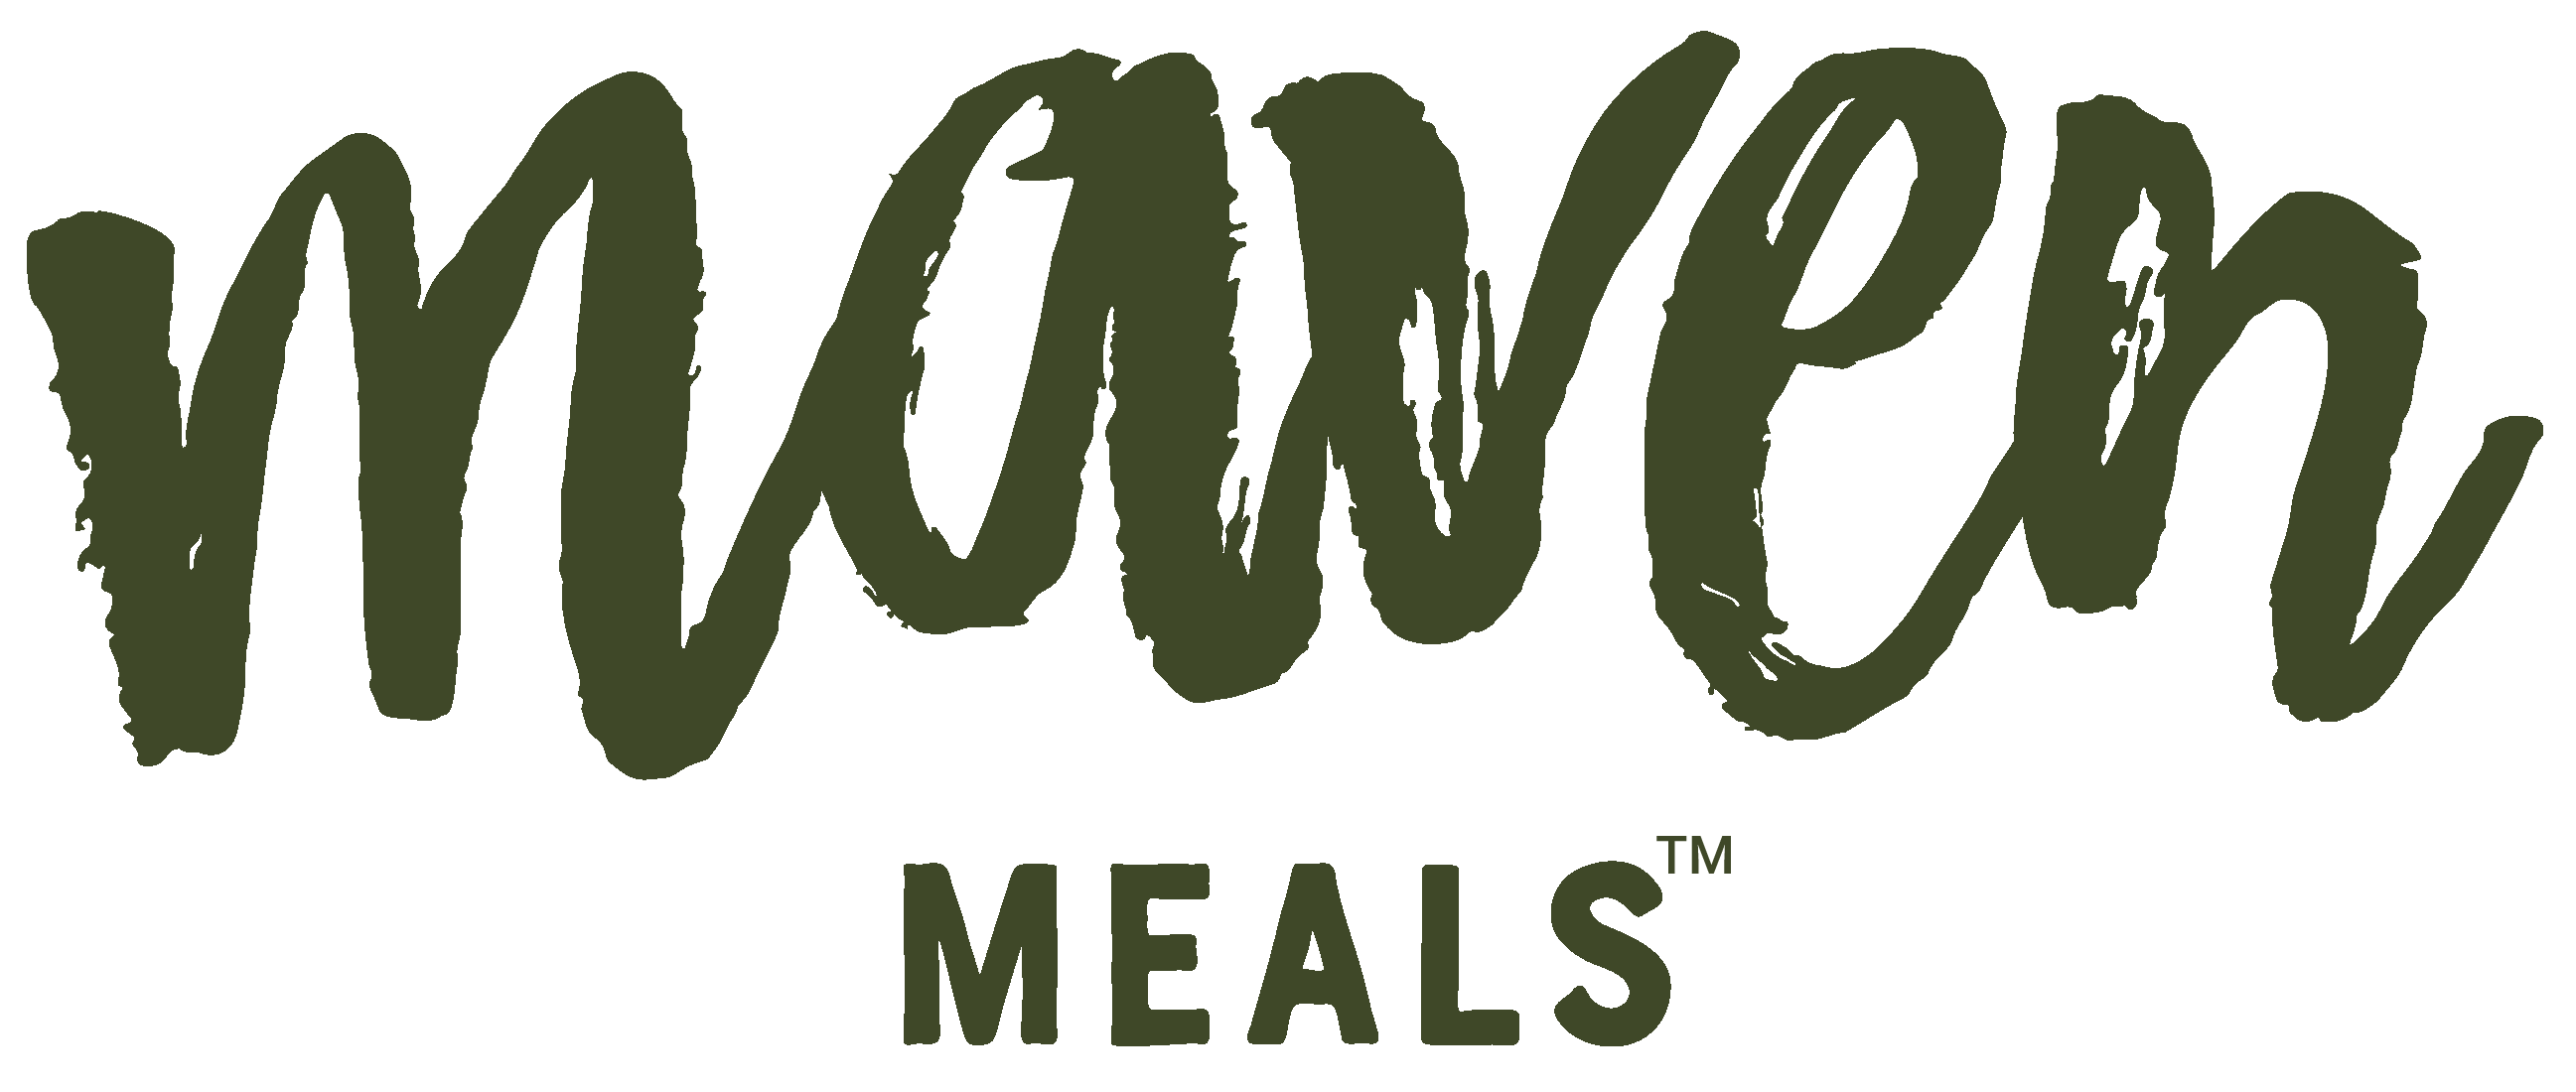 MAVEN MEALS Launches Premier Meal Prep and Delivery Franchise Program